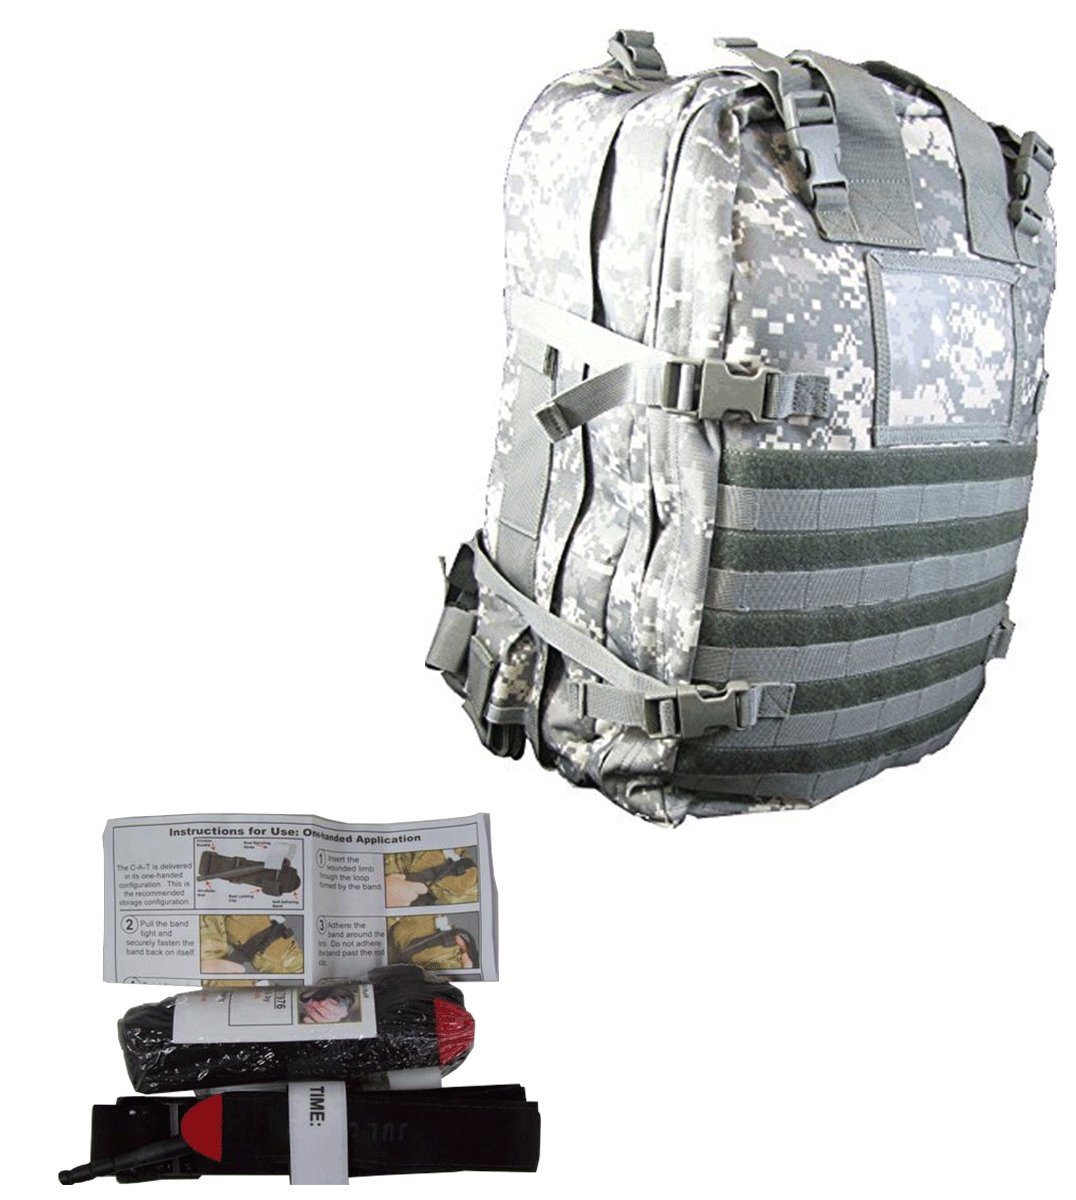 Medical Bags Fully Stocked - Stomp Medical Kit Bag With CAT Tourniquet Bundle (ACU)